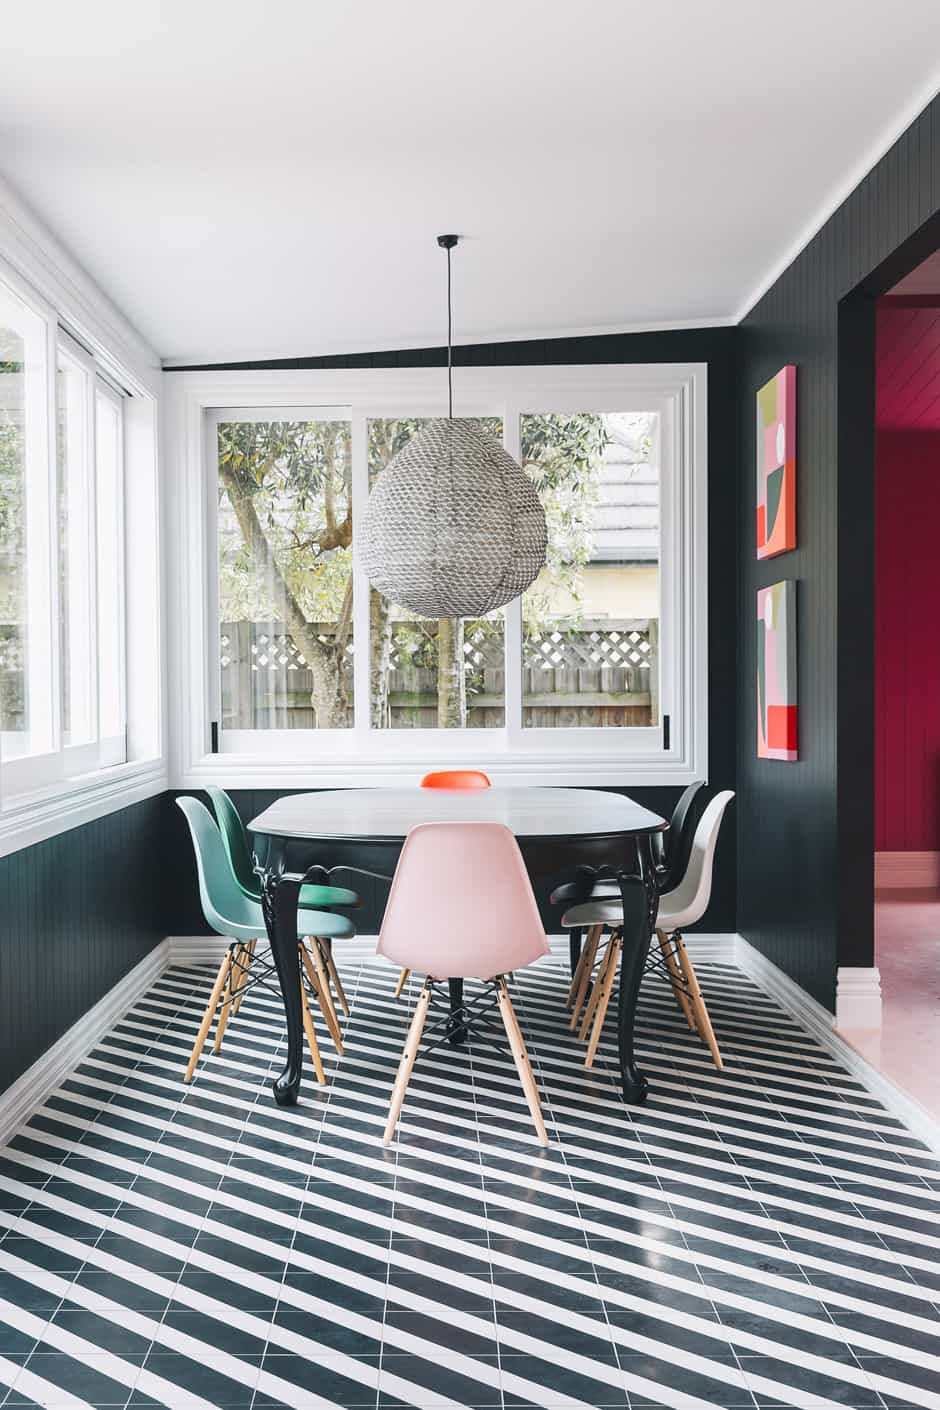 DINING A pendant light by Paris au Mois d'Août from Madder & Rogue, Eames chairs, and a dining table found on Trade Me and painted in Dulux Blackwood Bay (the same shade as the walls) are complemented by Alex's own artworks, The Twins. She and Daisy are pictured opposite.